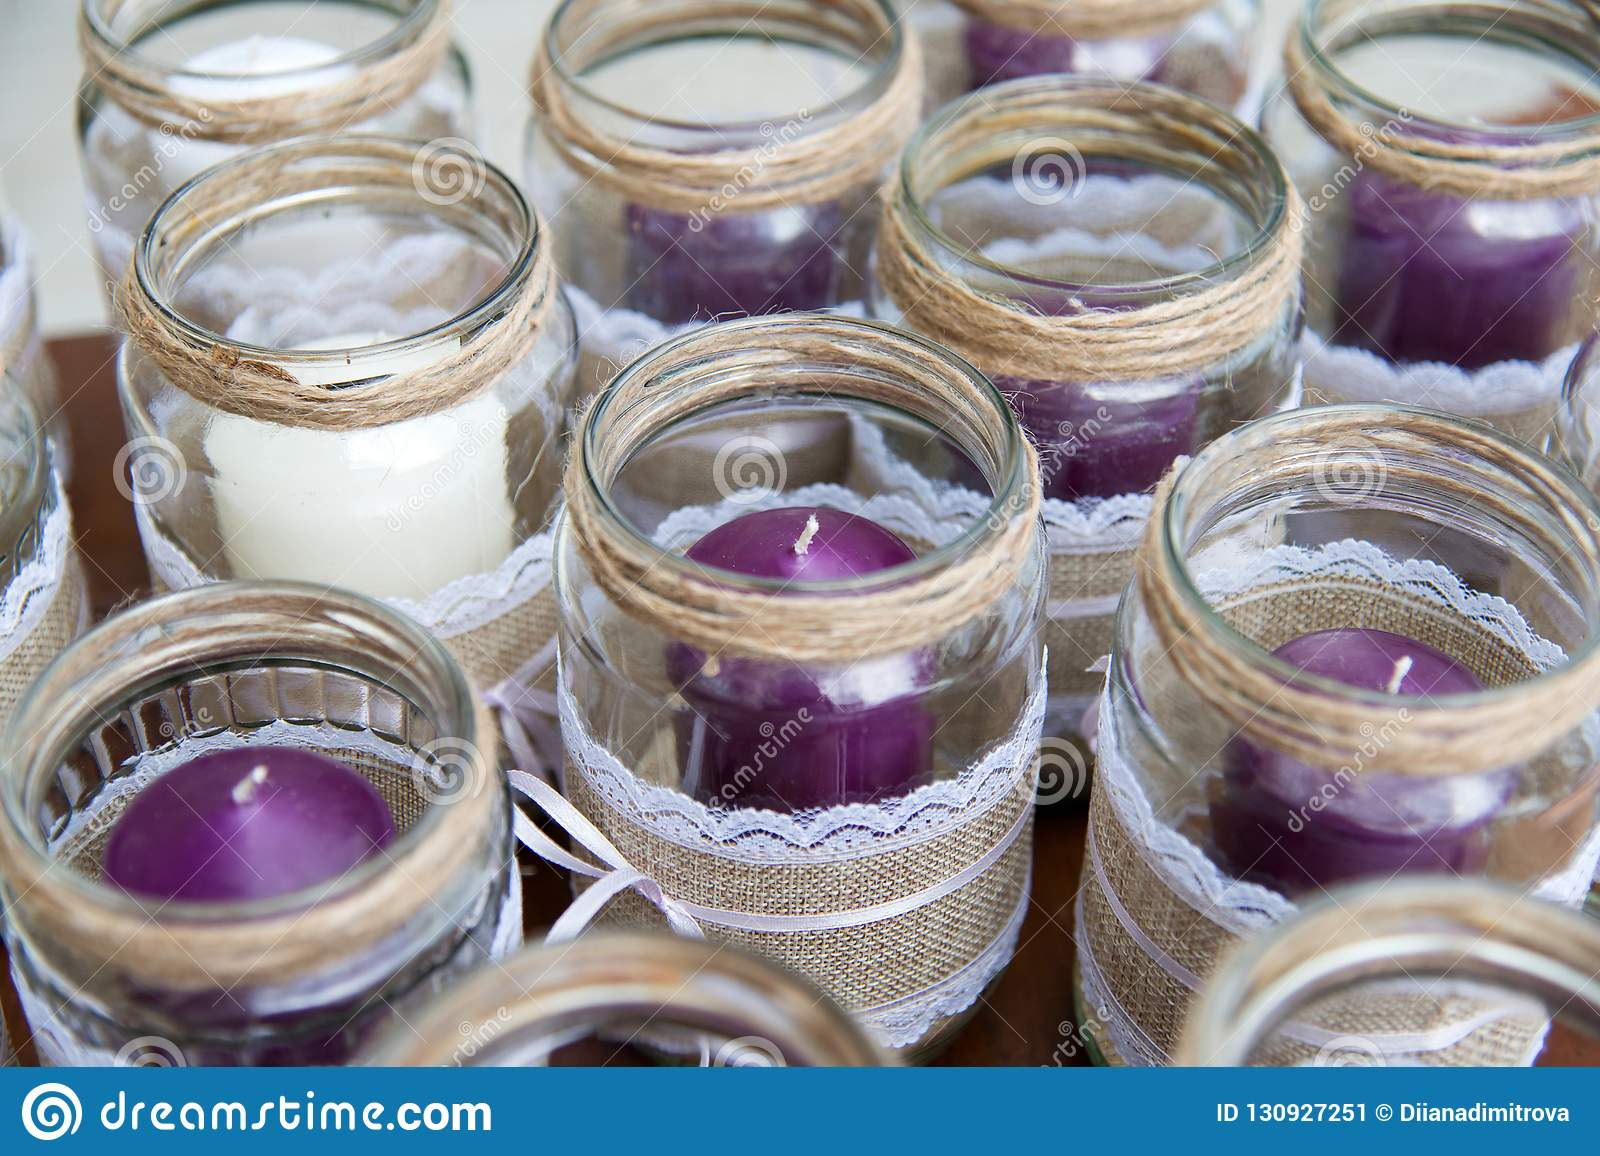 Wedding Decoration Candles In Glass Jars Decorated With Lace